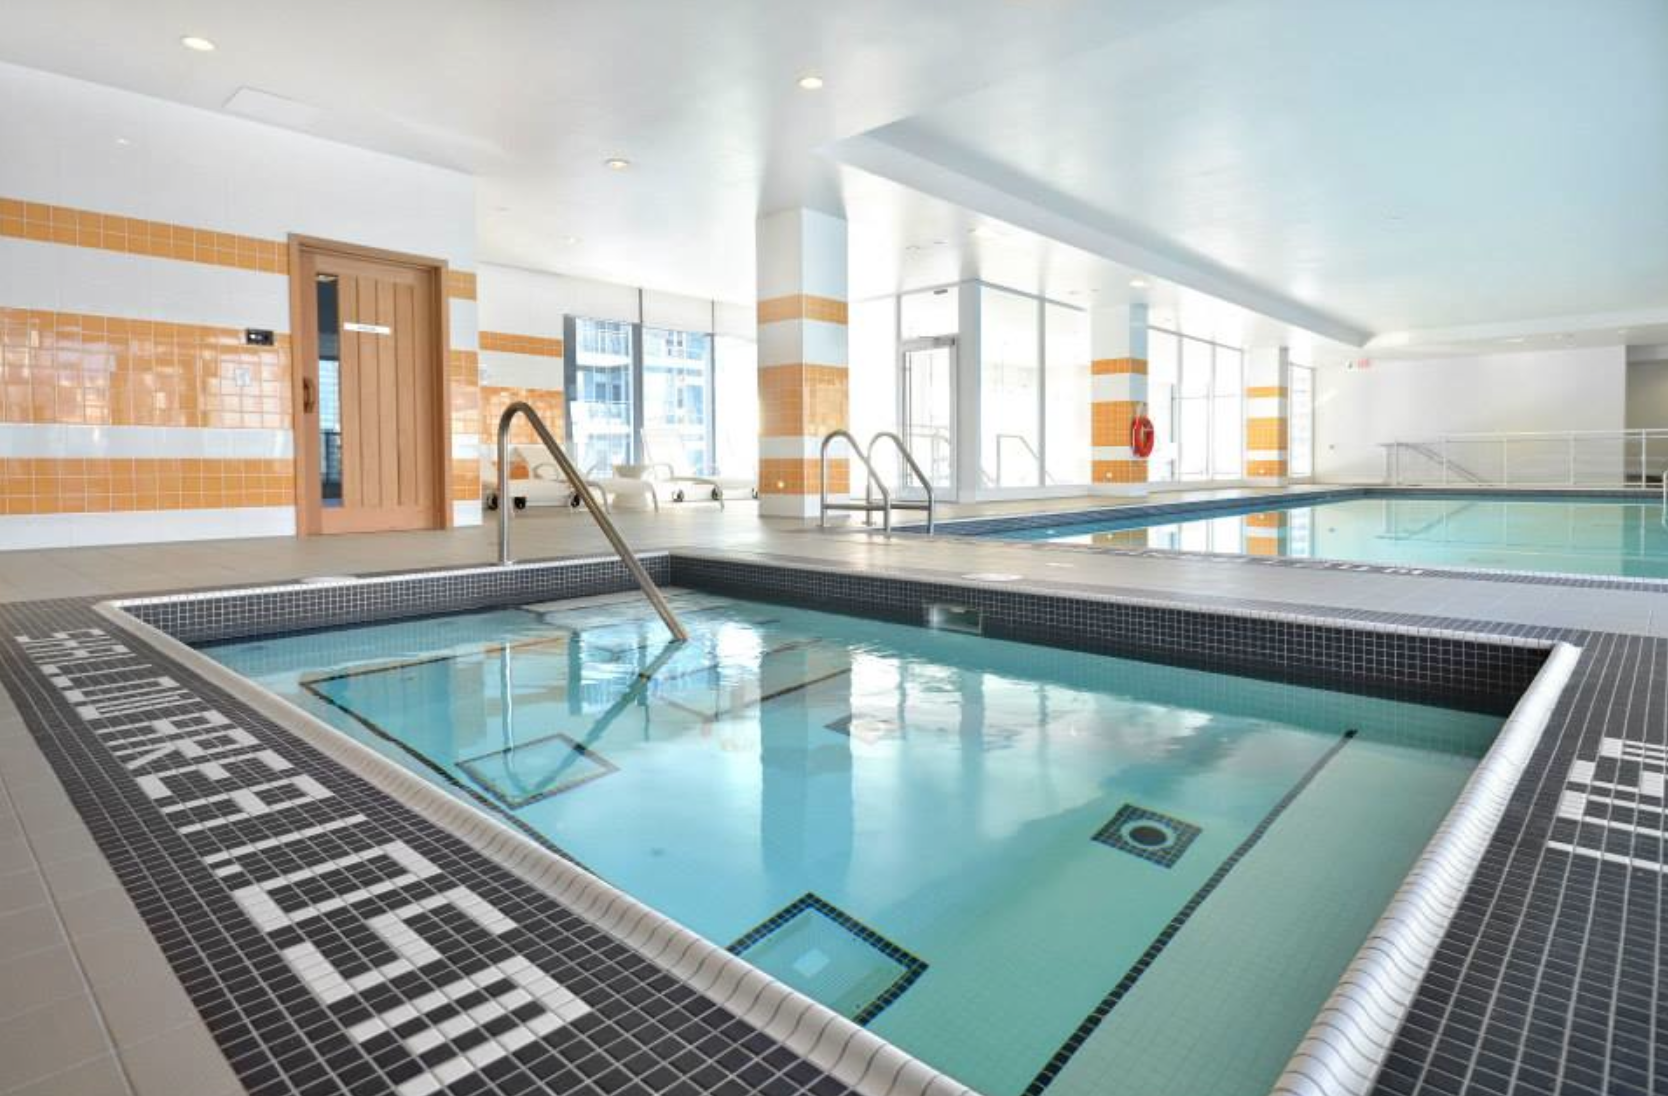 Move In Now And Experience The Impressive New Amenities At Pinnacle On Adelaide